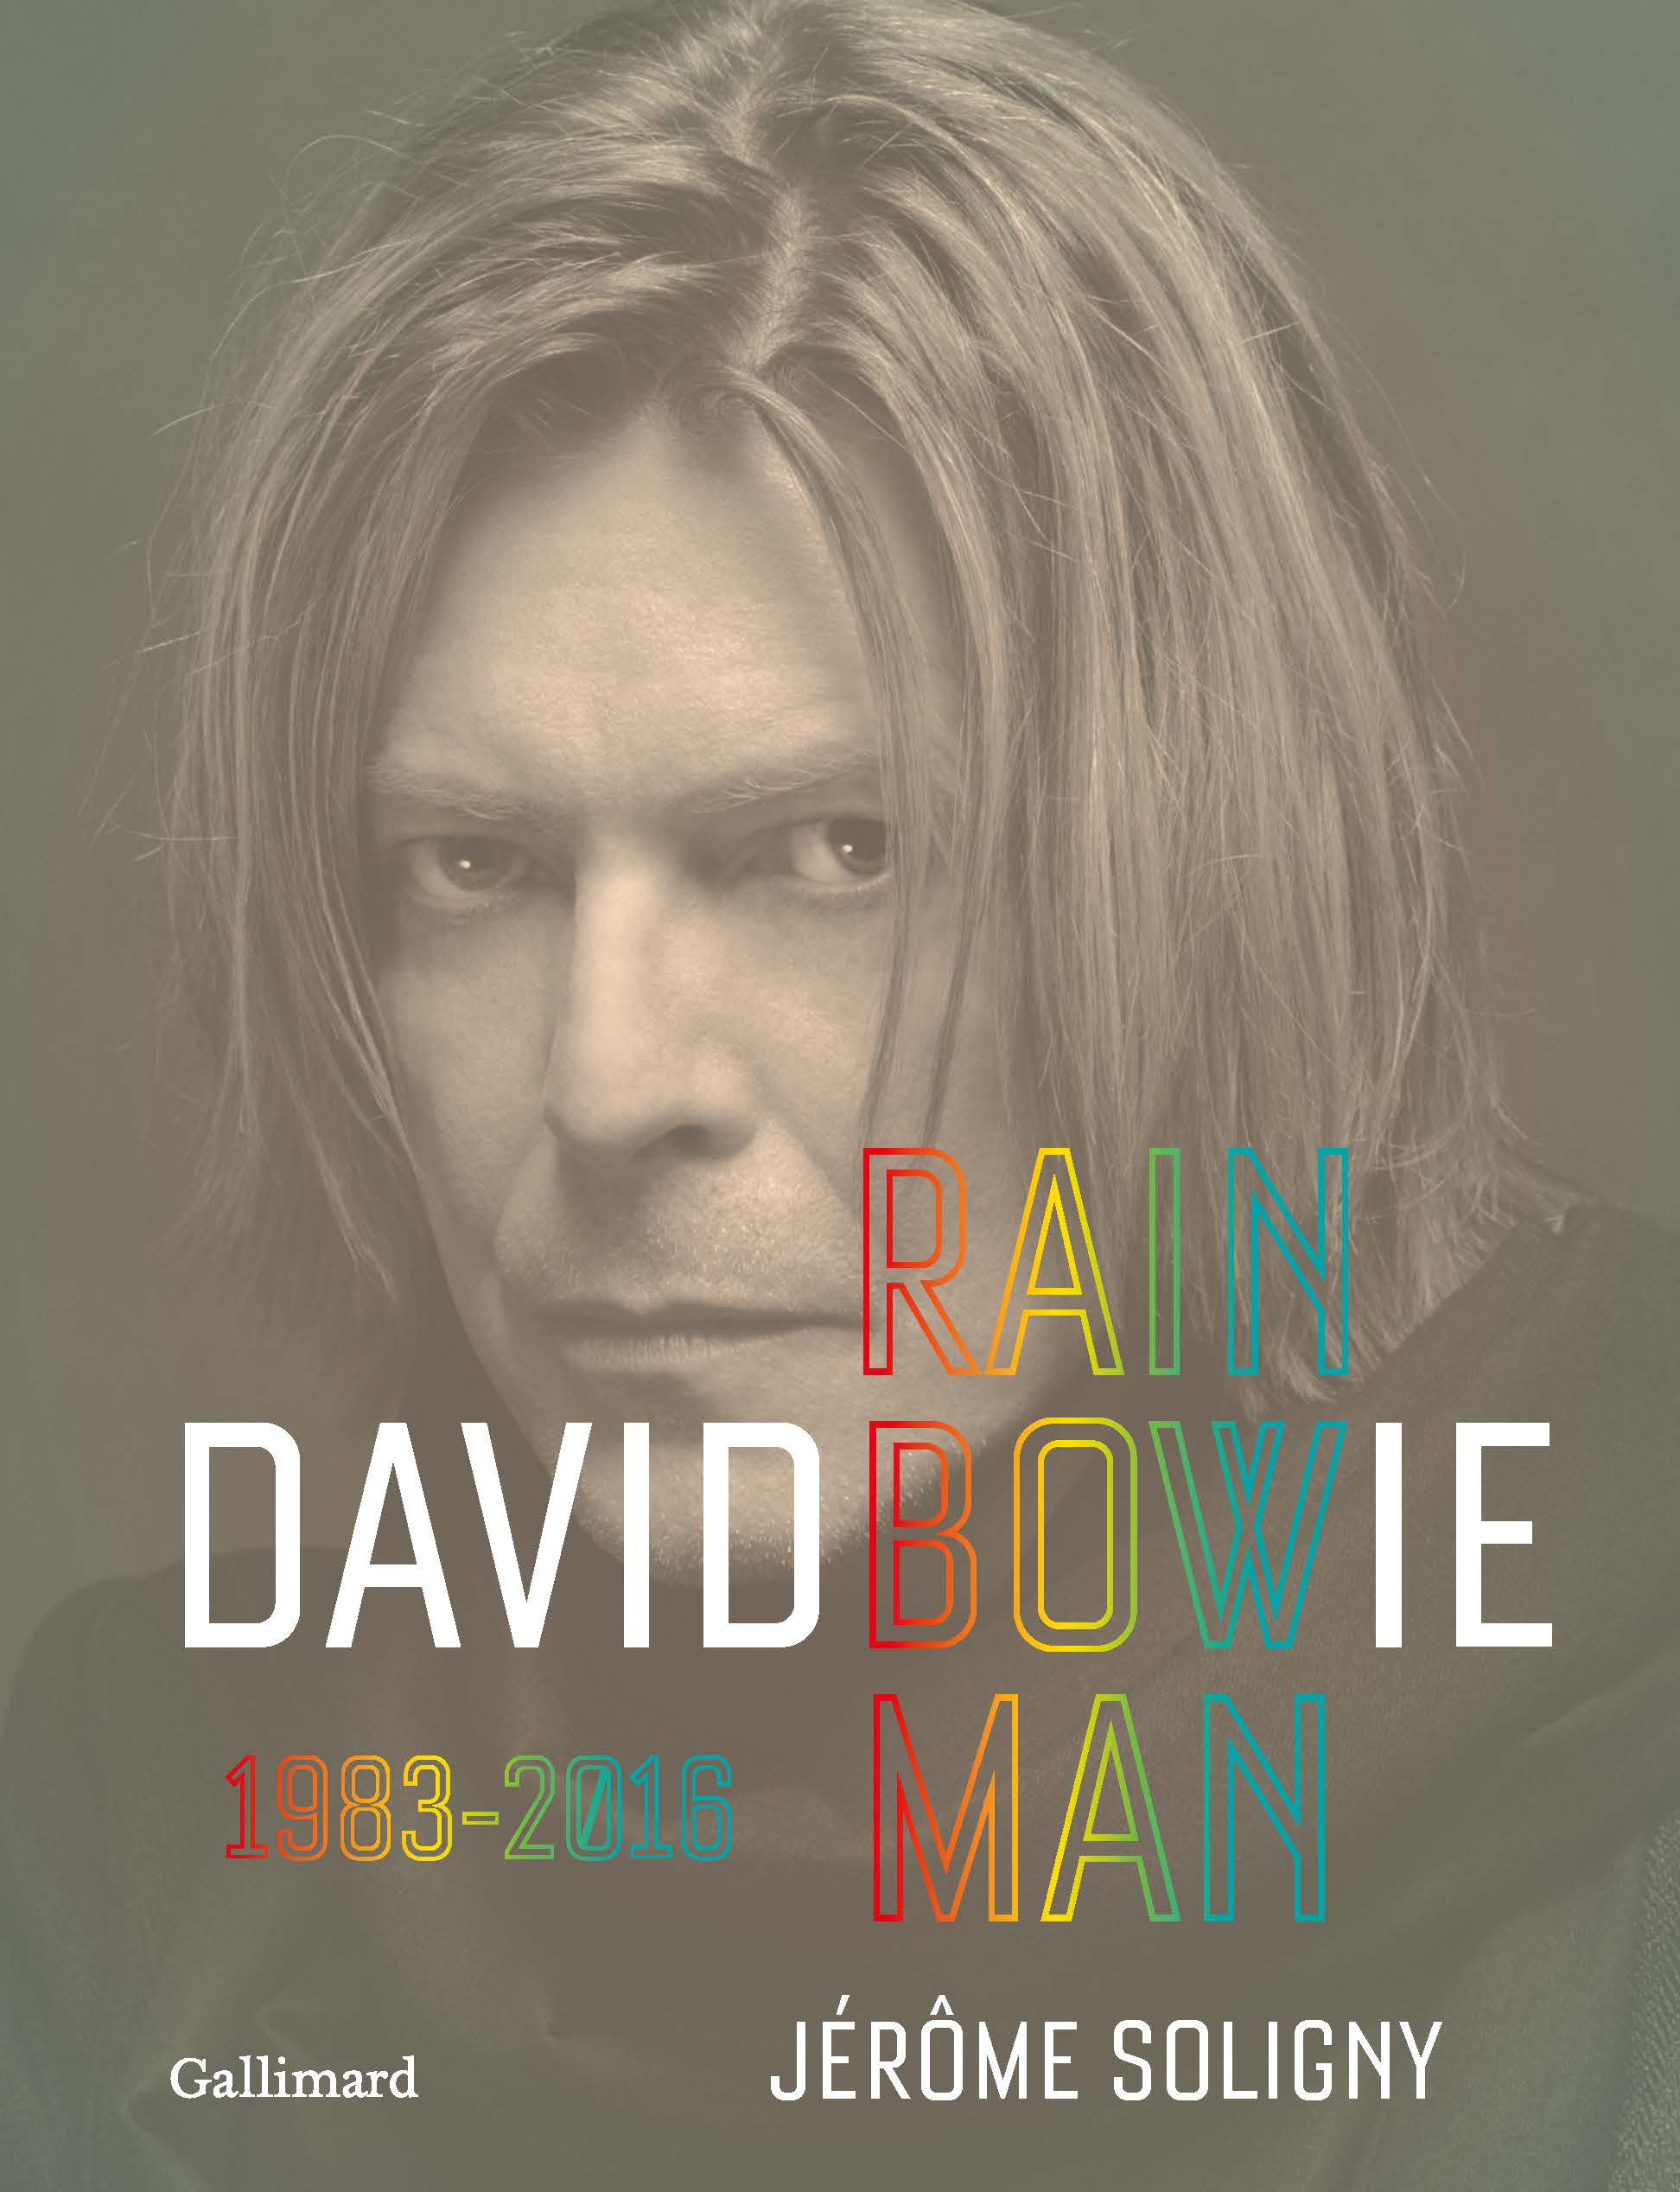 DAVID BOWIE - RAINBOWMAN, 1983-2016